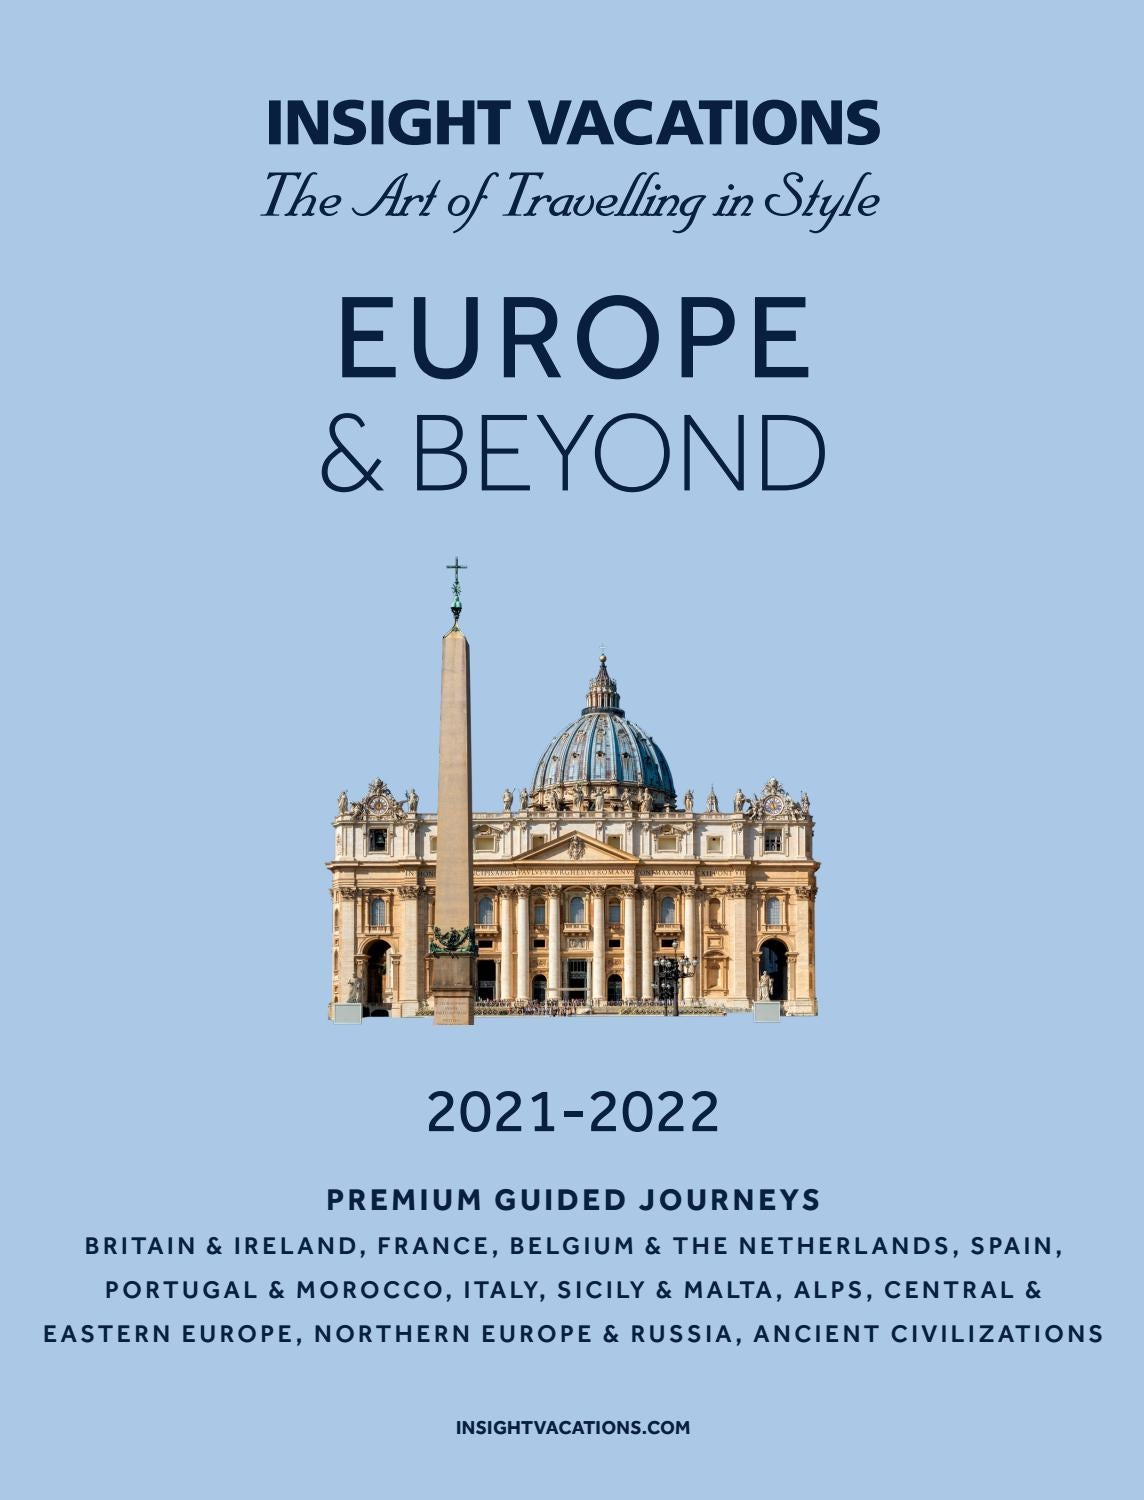 trabajo Discriminatorio medida  2021 Europe and Beyond   CA by Insight Vacations - issuu